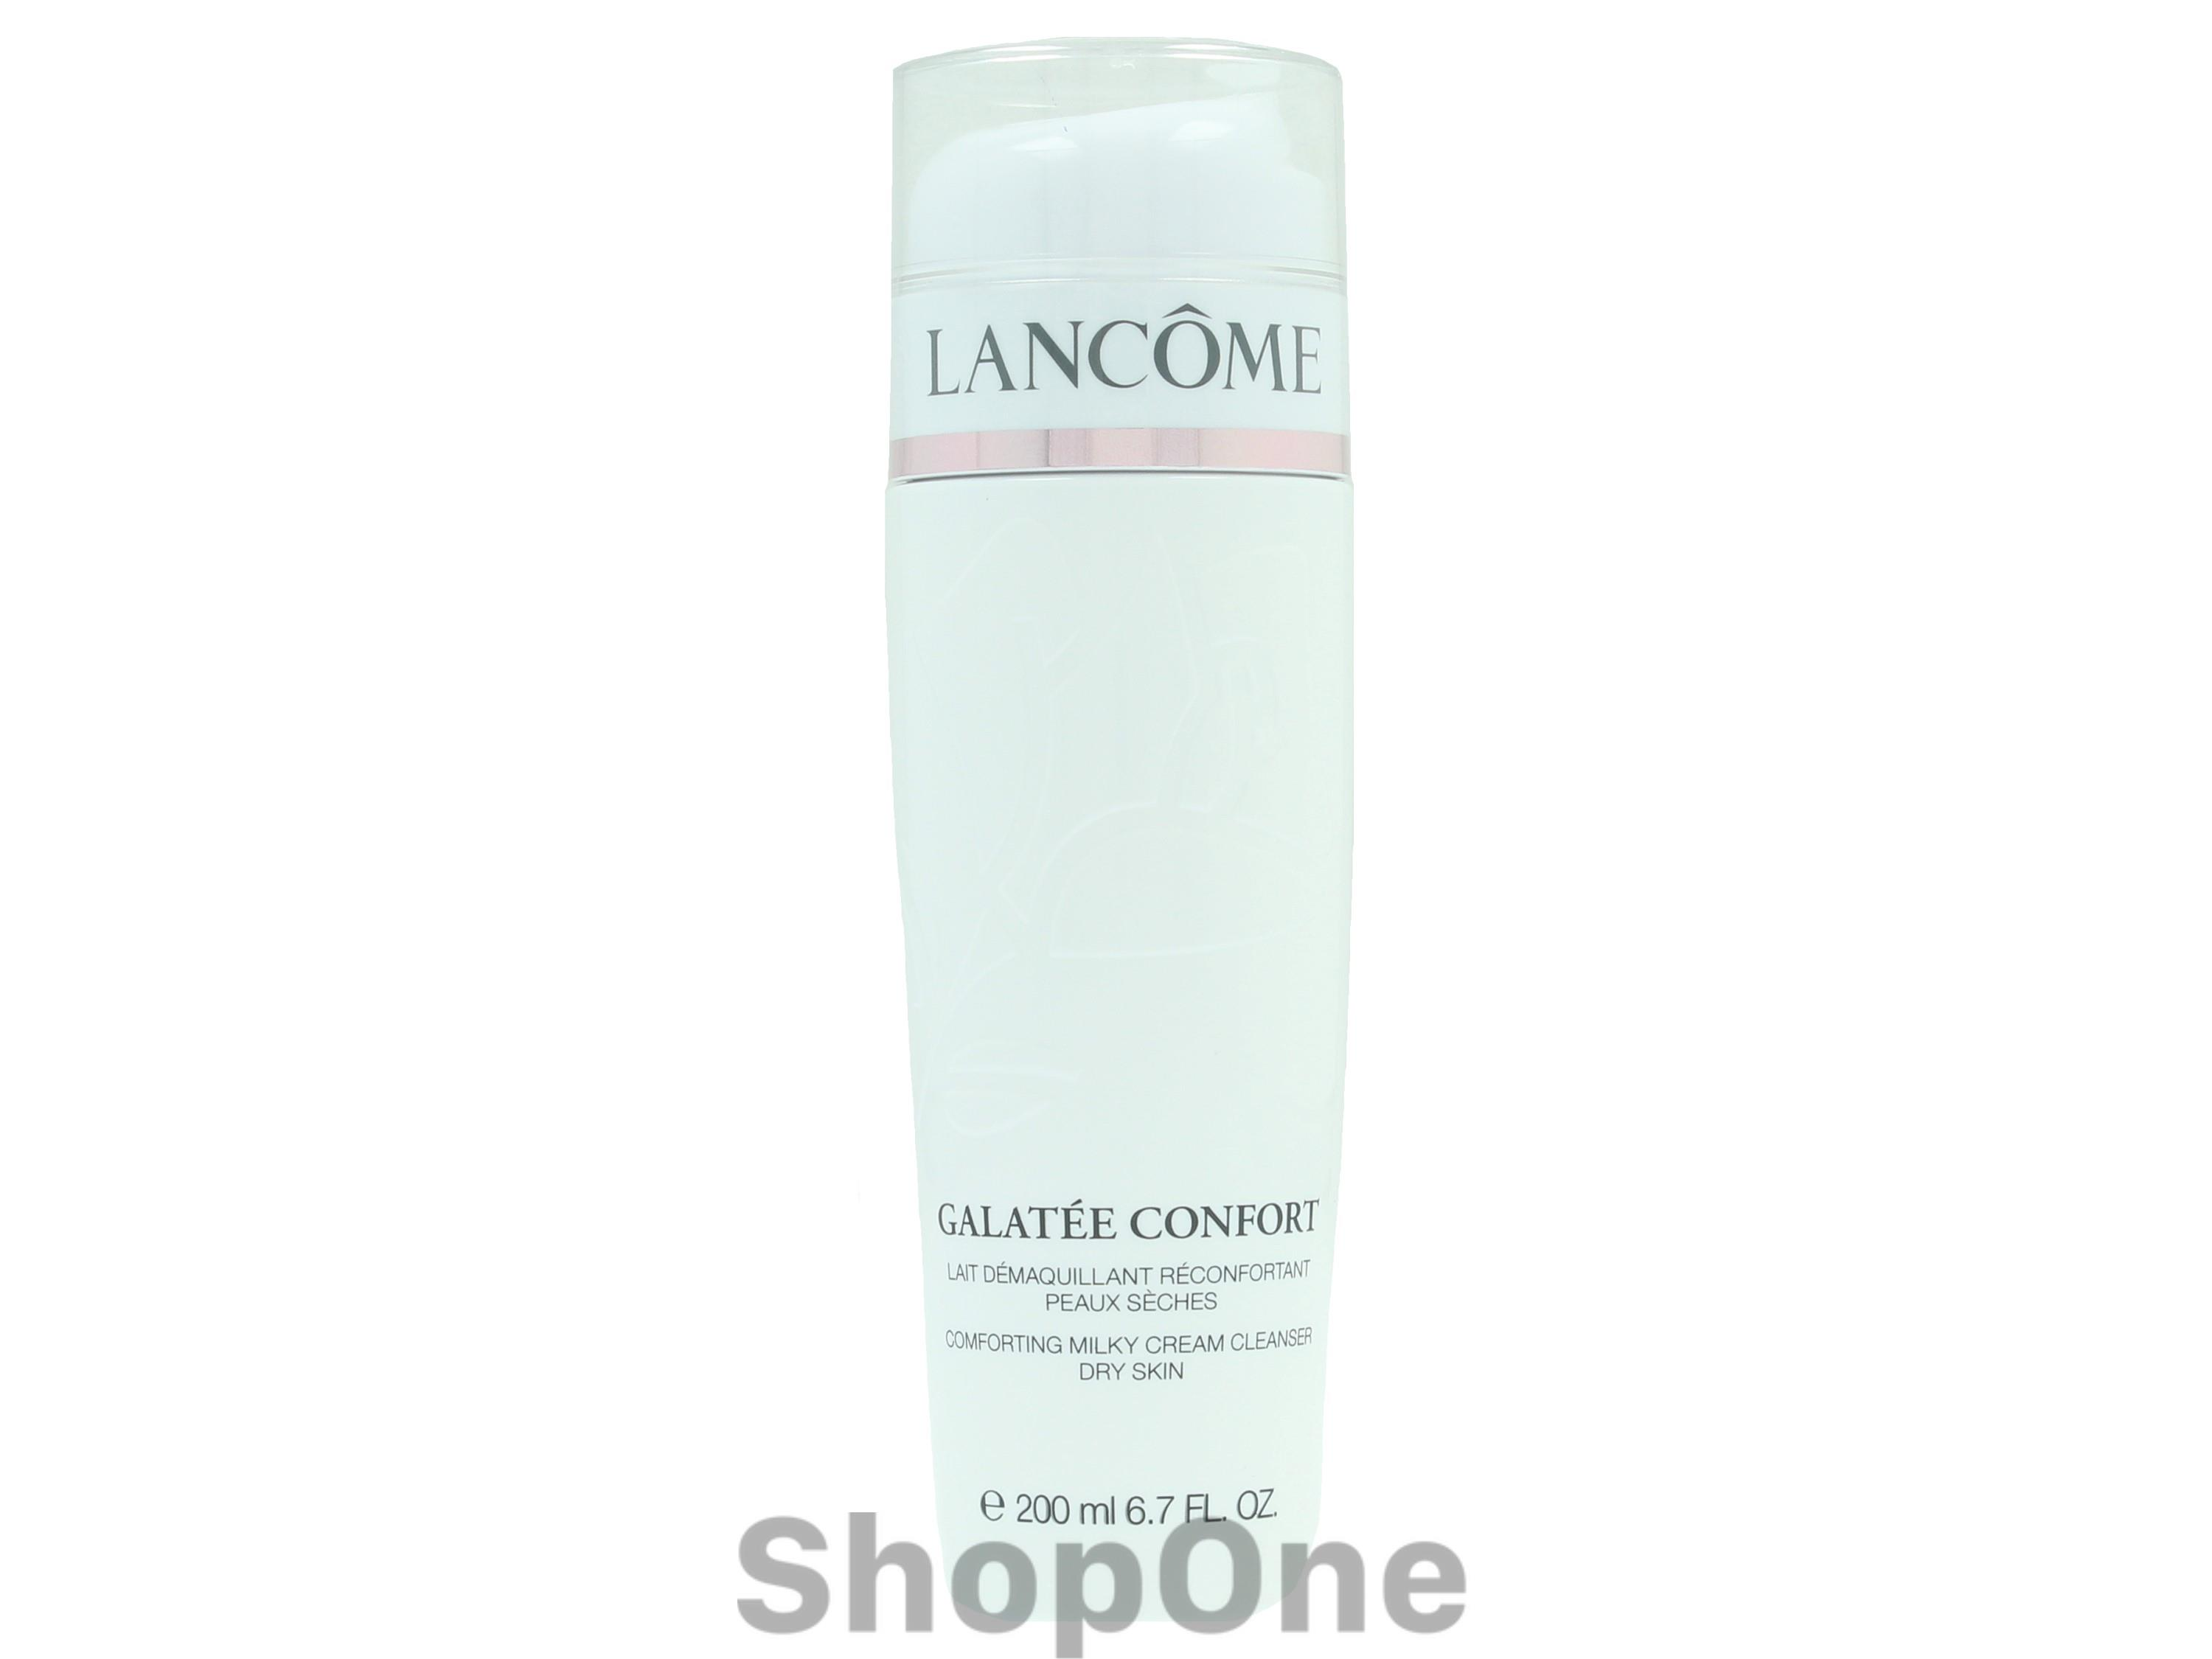 Image of   Galatee Confort Make Up Remover Milk 200 ml fra Lancome